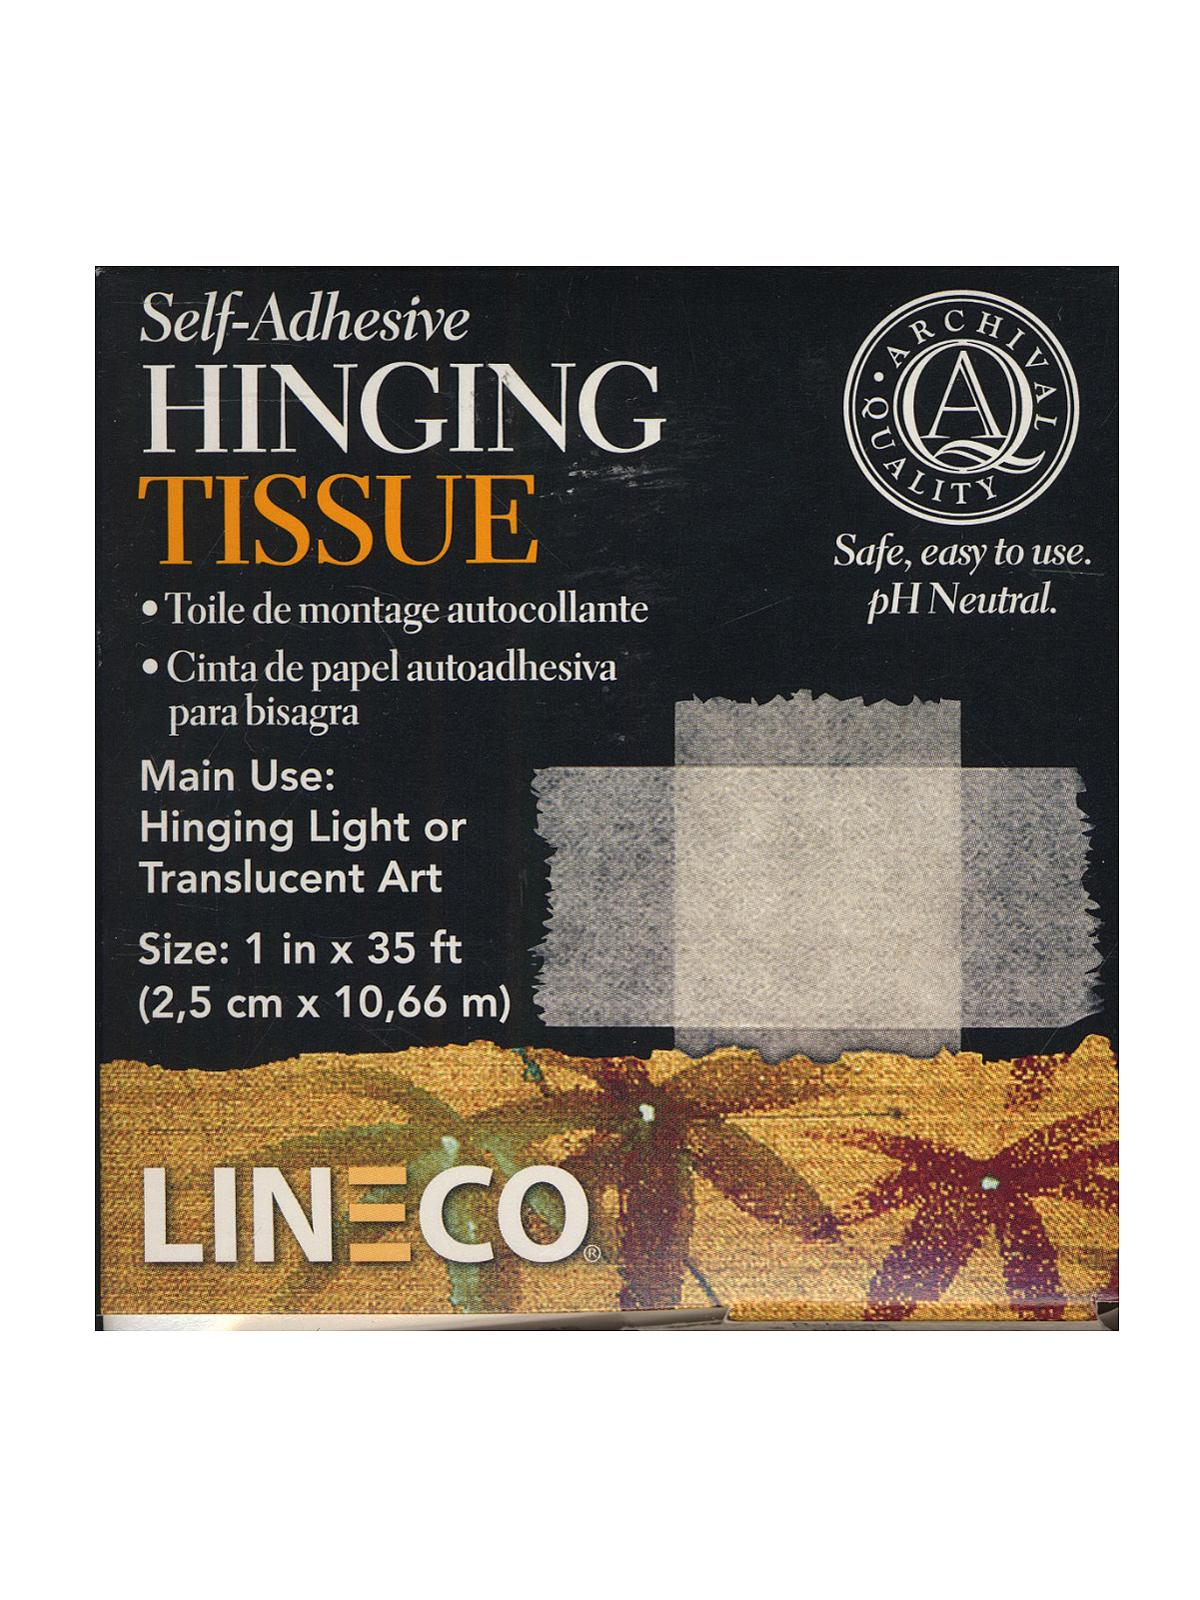 Self-Adhesive Hinging Tissue